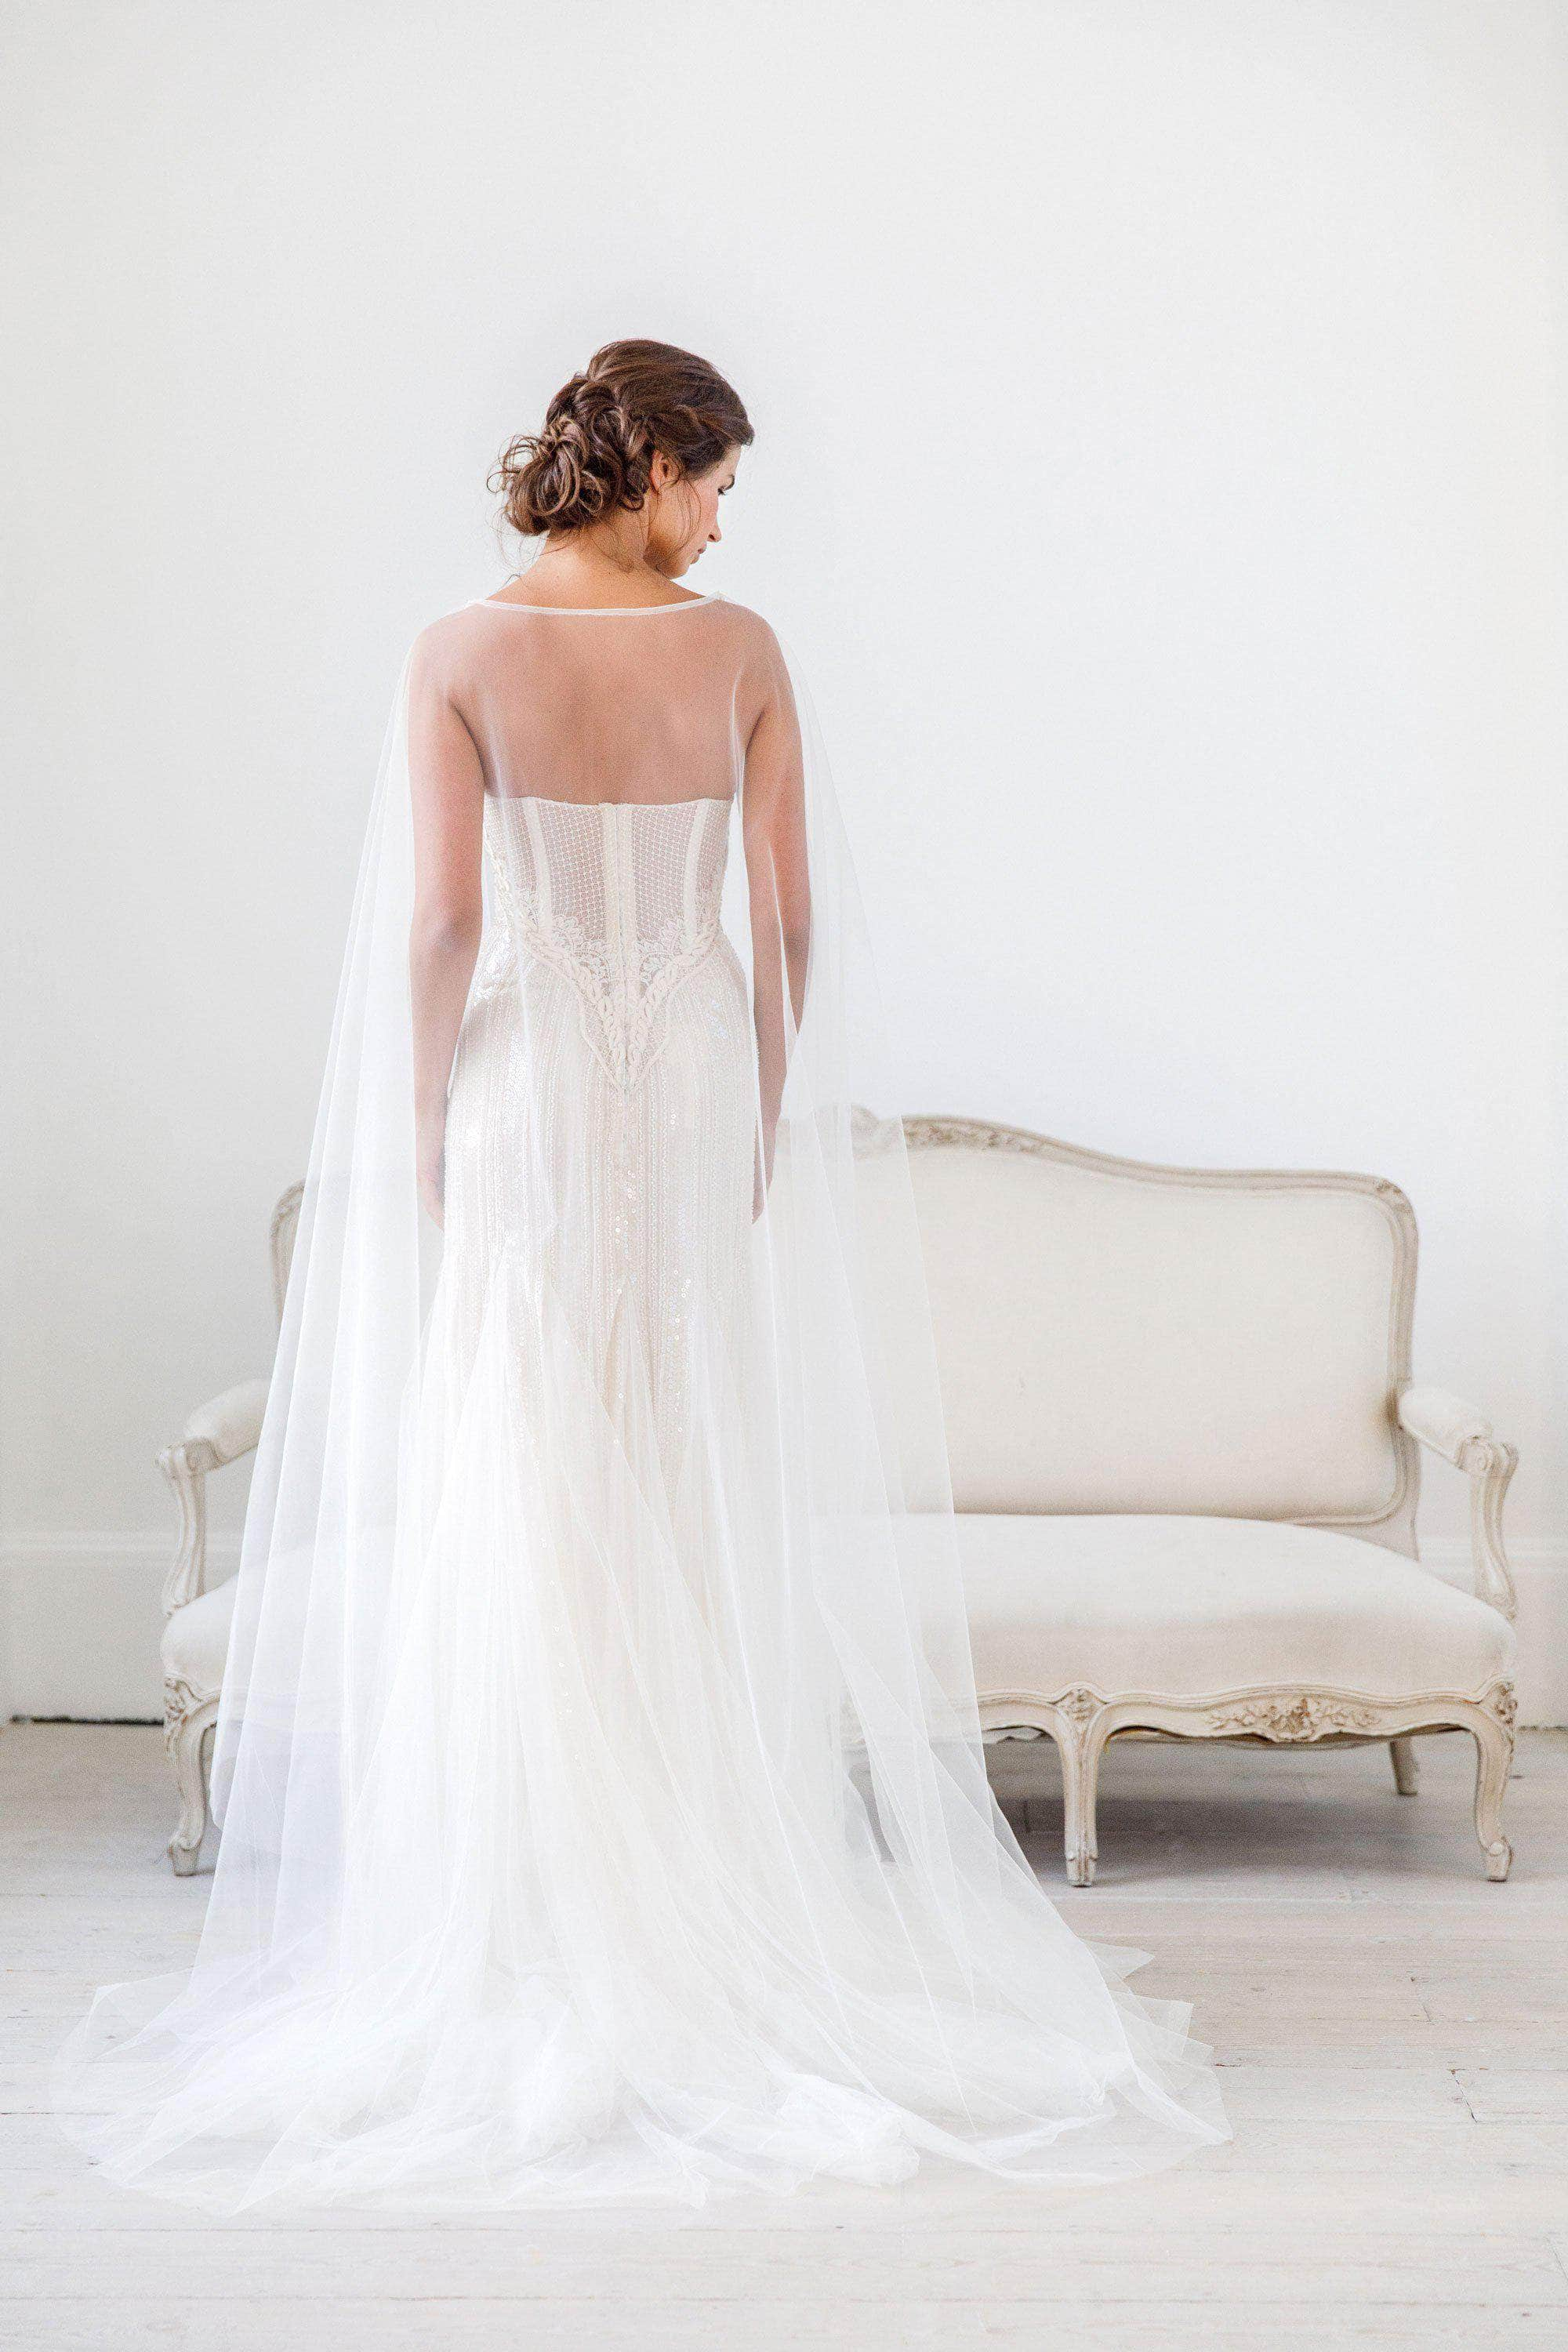 Tulle Bridal Cape Imogen Britten Weddings